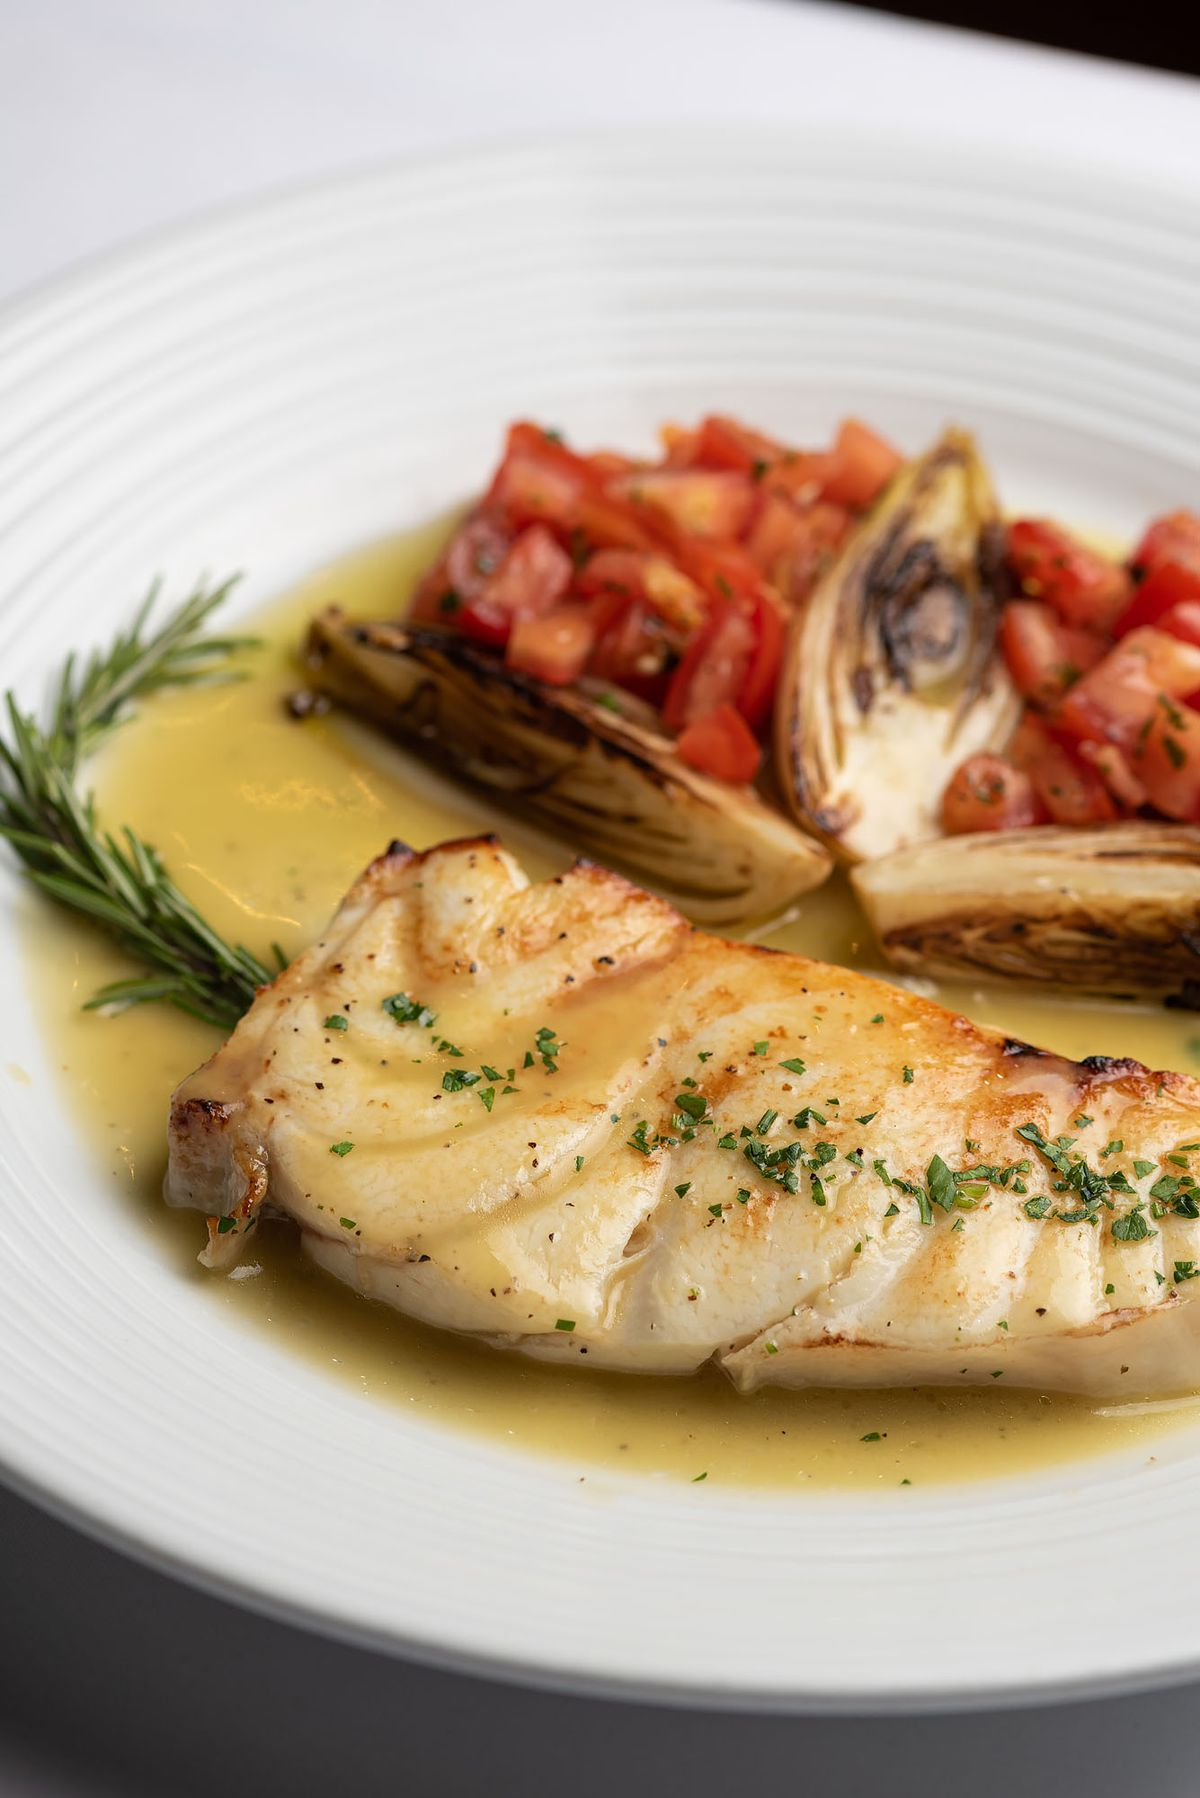 A cooked white fish in butter with tomatoes and artichoke on the side.